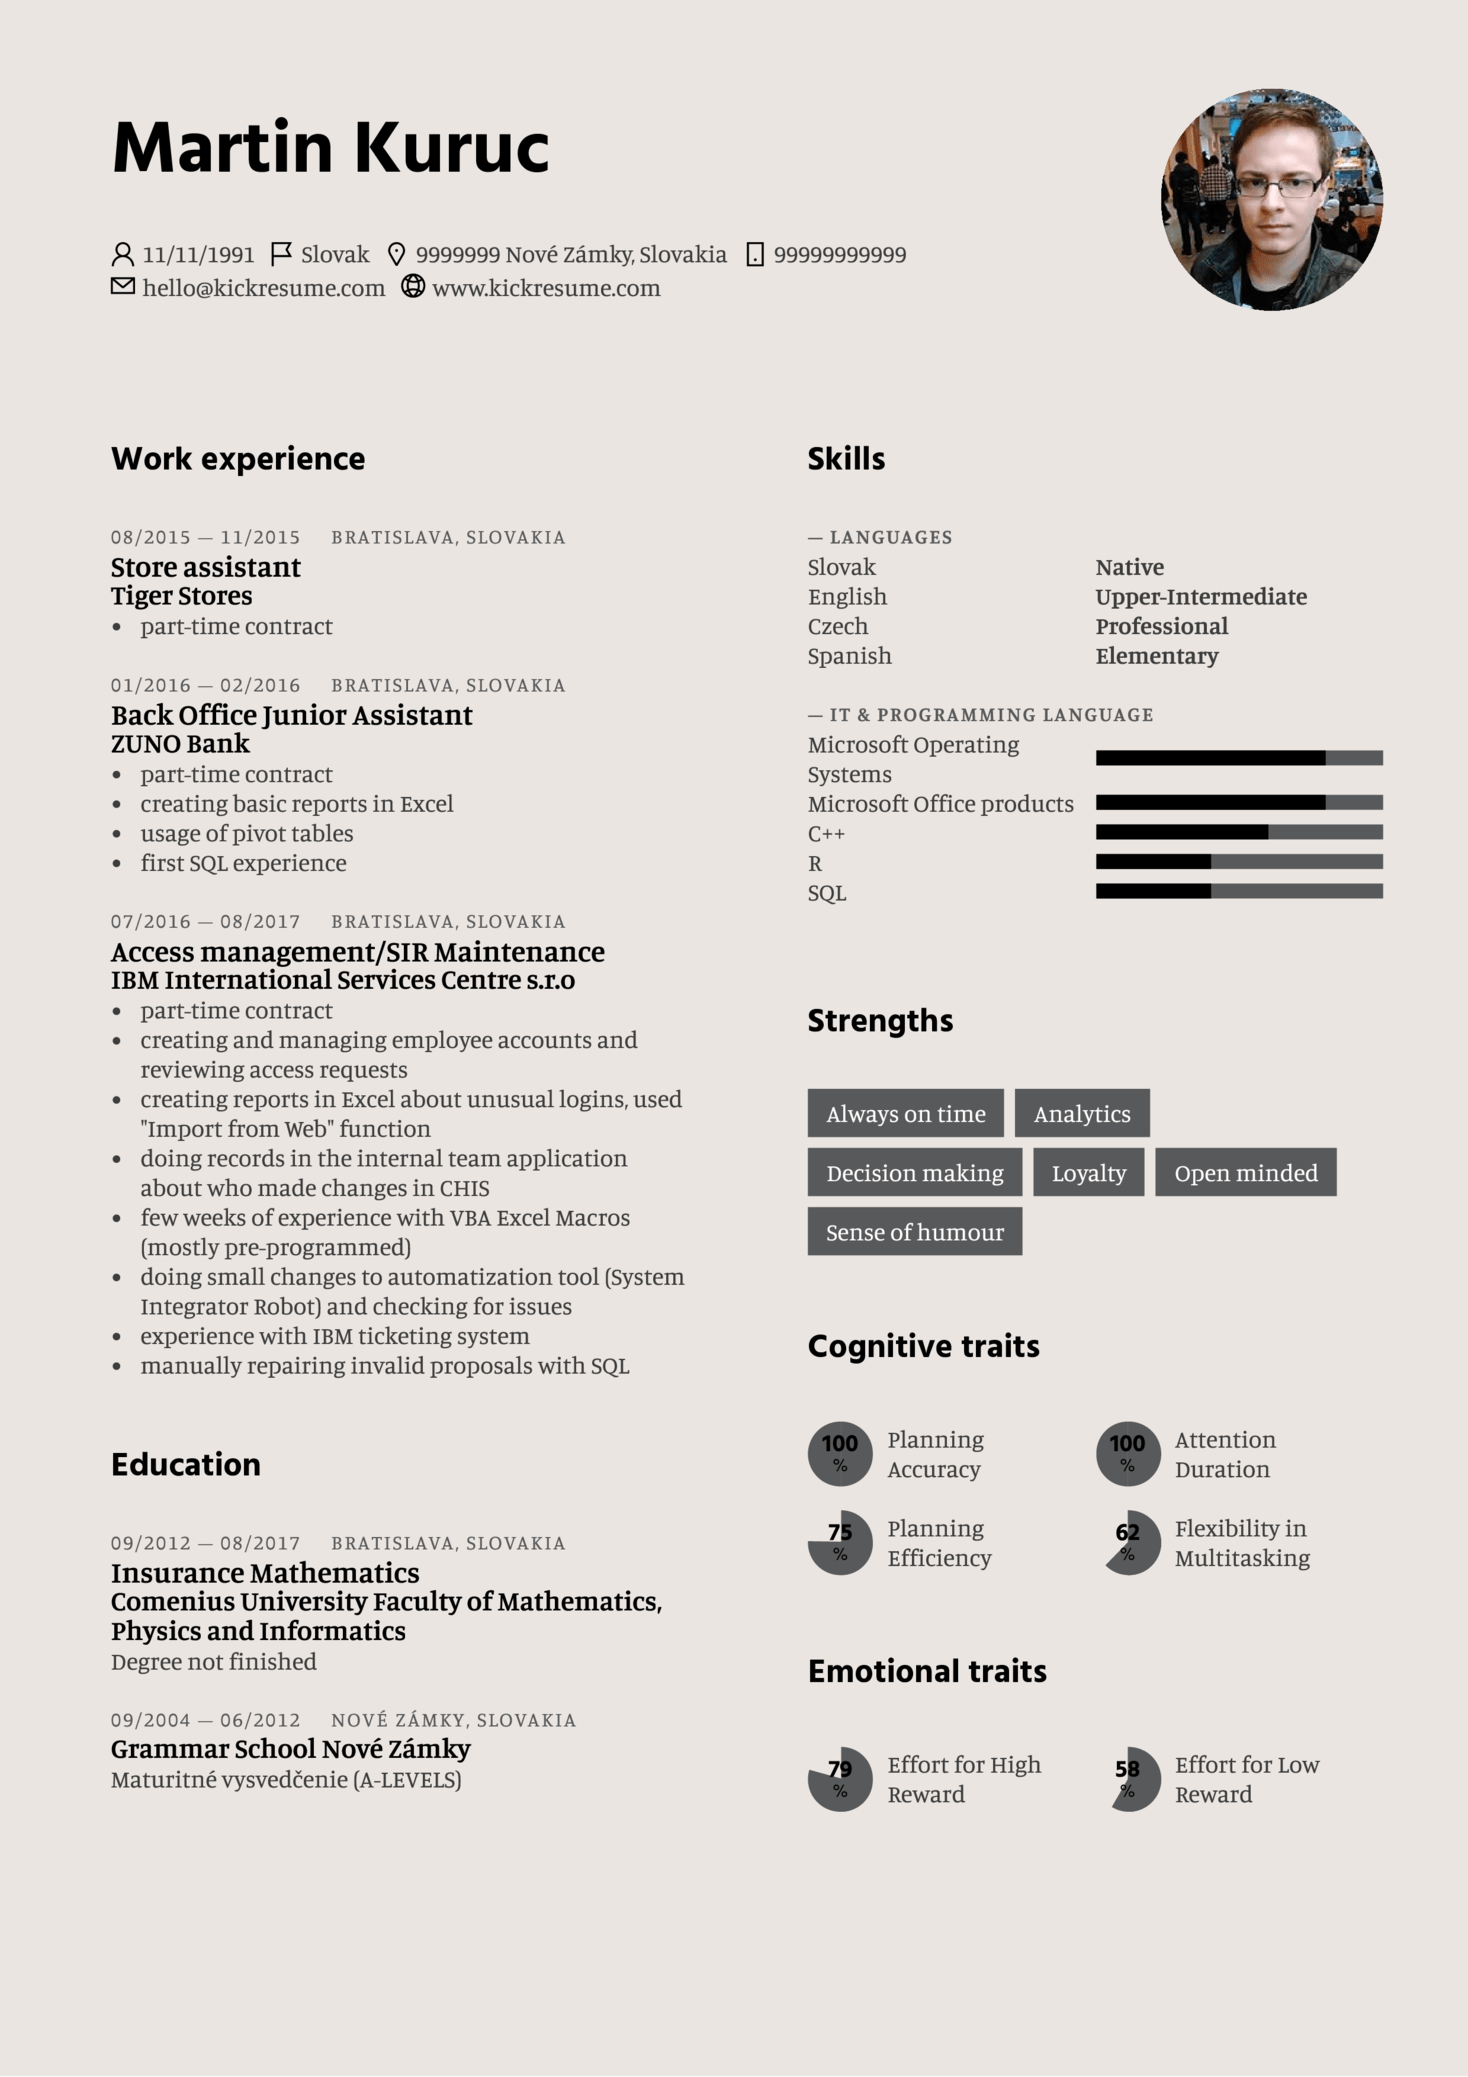 image T Resume Format on resume help, resume layout, resume examples, resume cover, resume types, resume style, resume skills, resume categories, resume font, resume outline, resume objectives, resume for cna with experience, resume templates, resume form, resume design, resume mistakes, resume for high school student no experience, resume structure, resume builder, resume references,